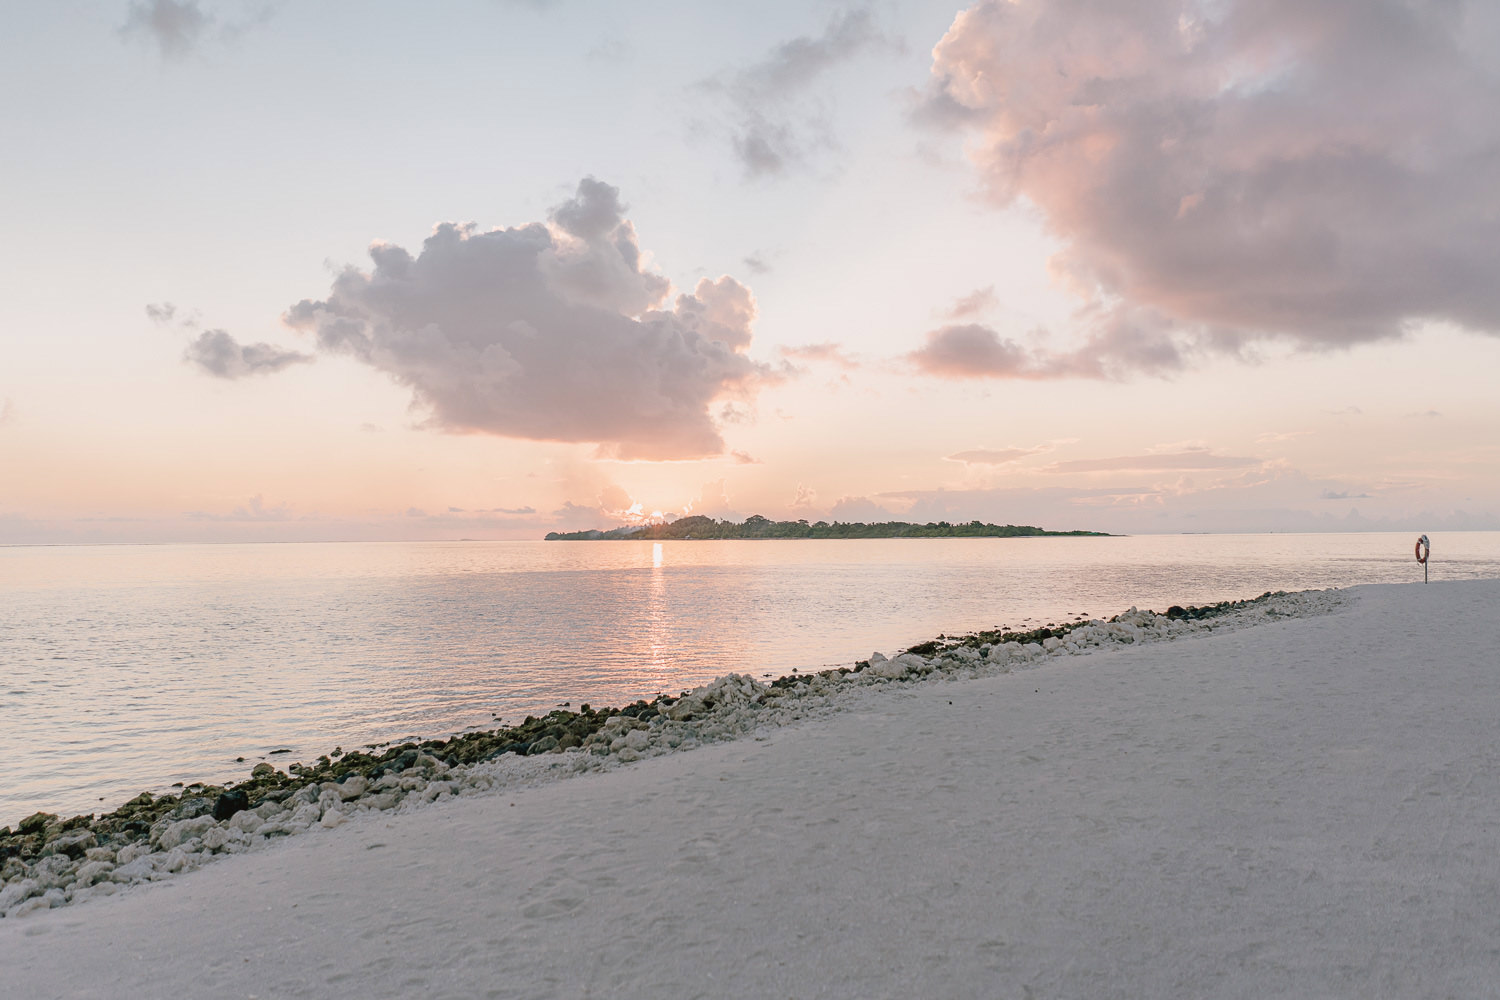 wedding photographer in maldives anniversary trip cocoon fine art photography beach sunset romantic